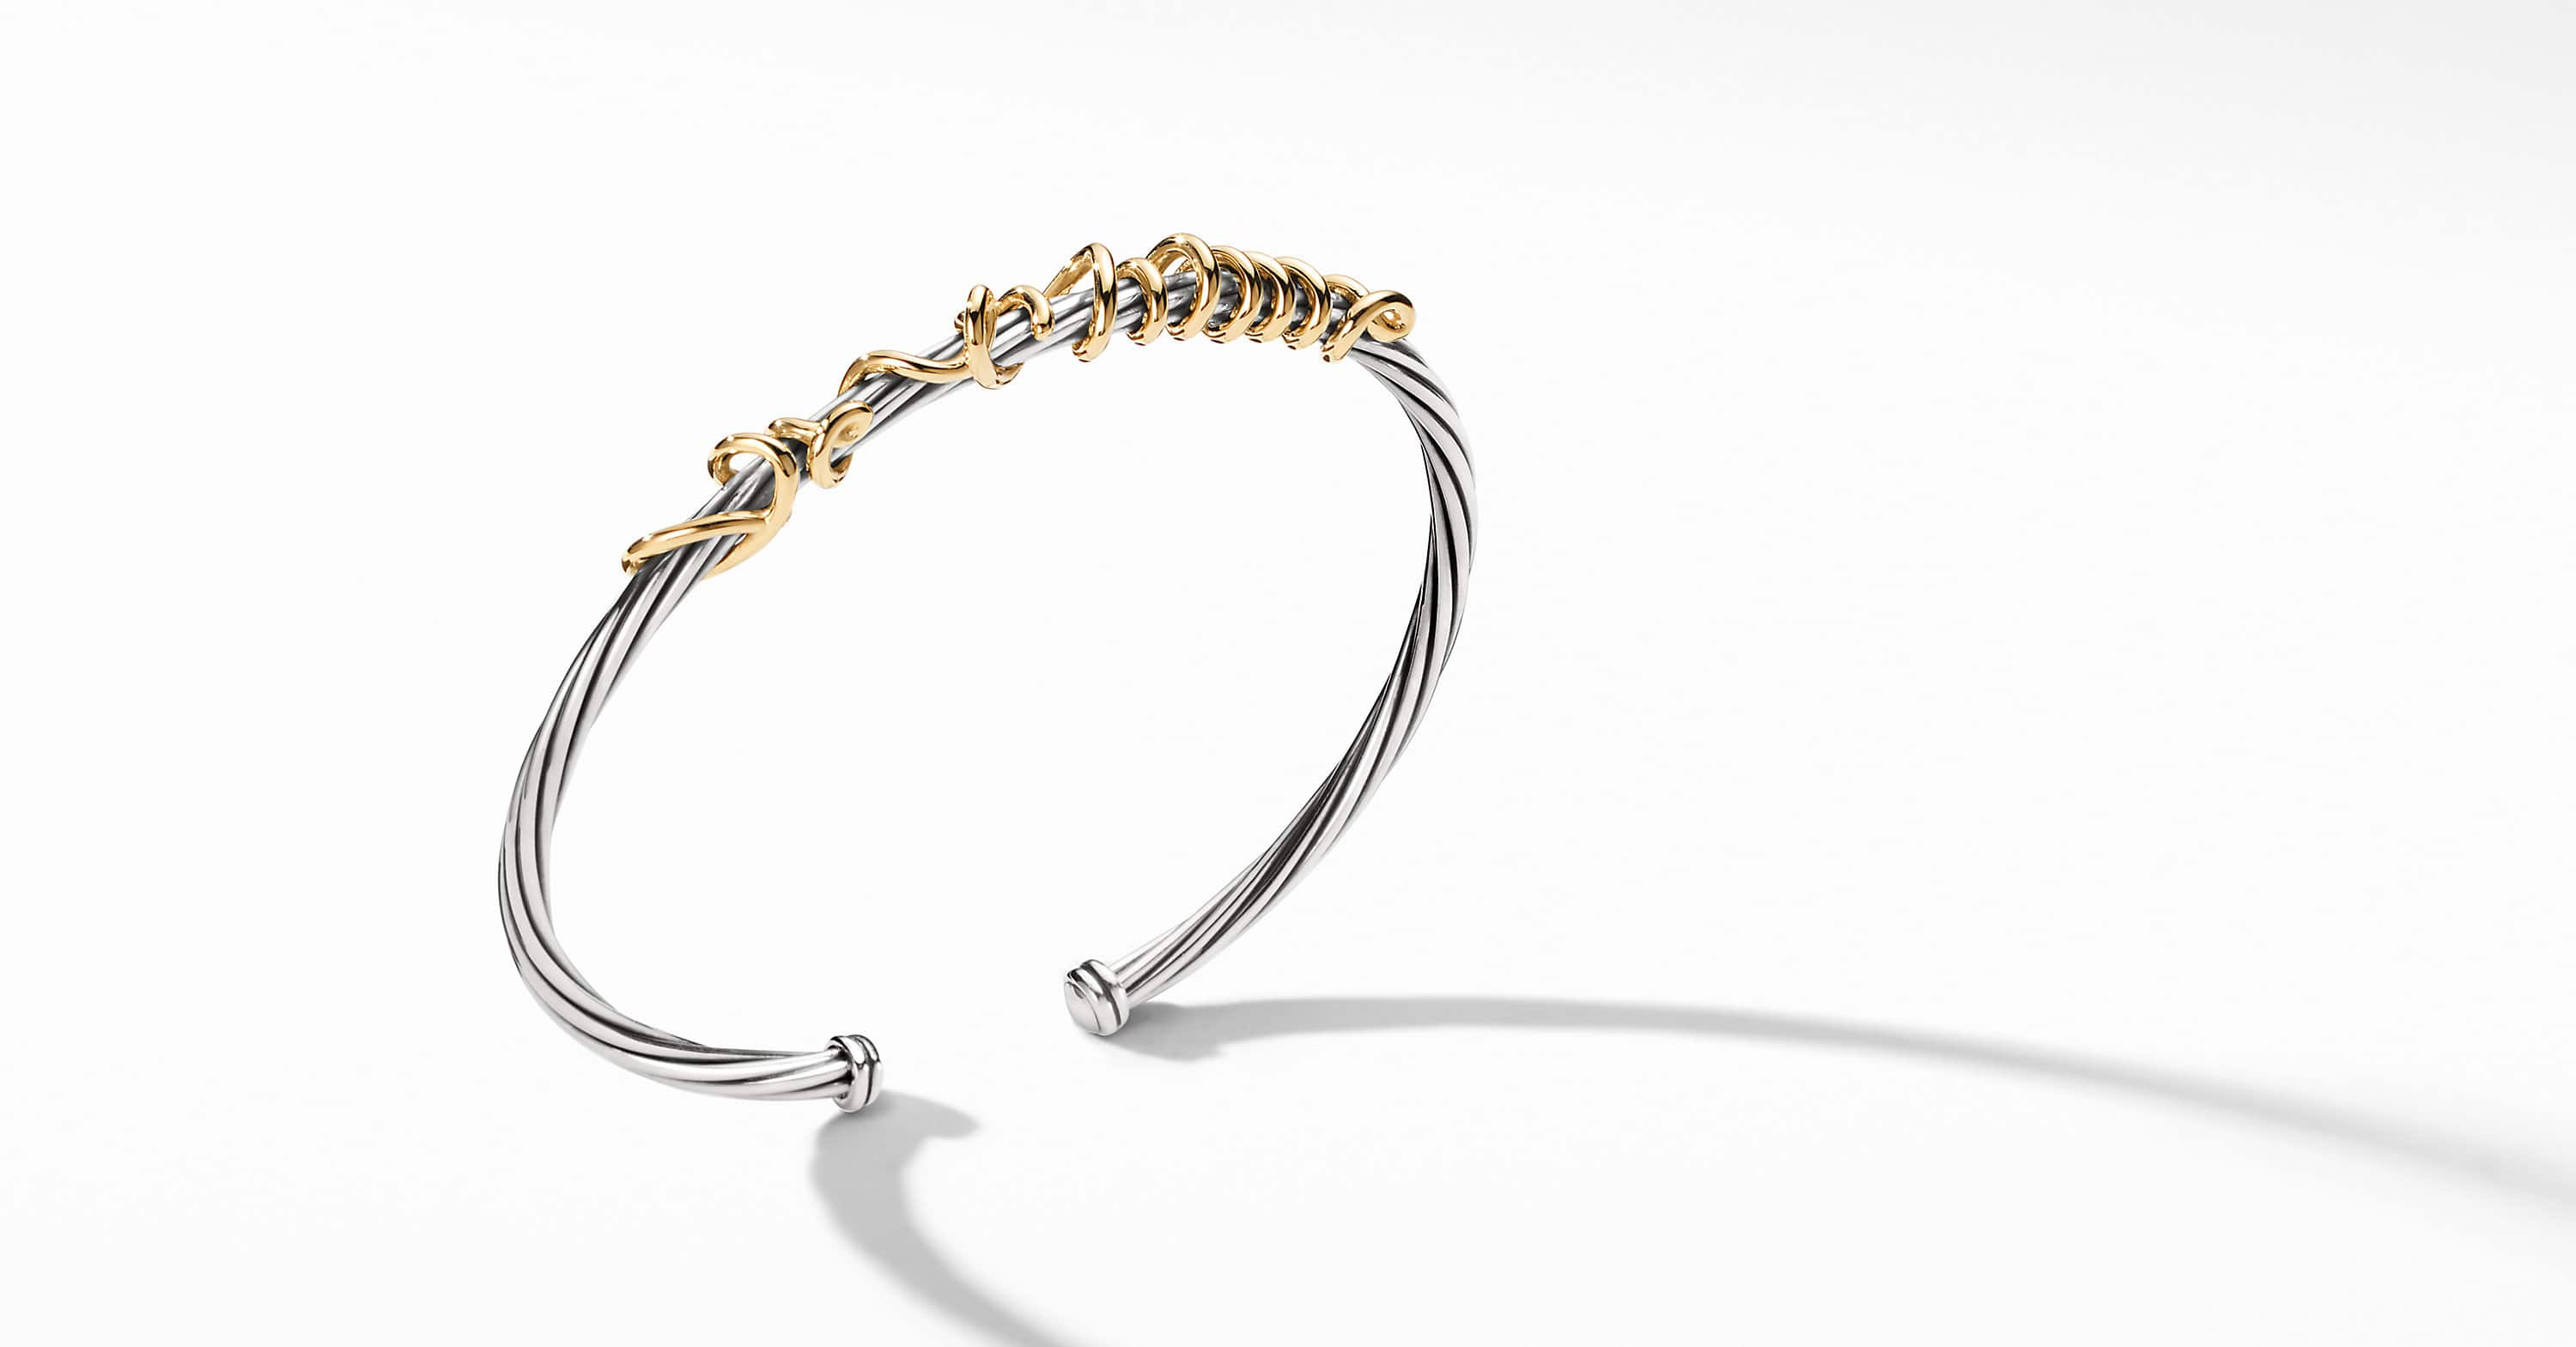 DY Whispers Je T'aime Bracelet with 14K Gold